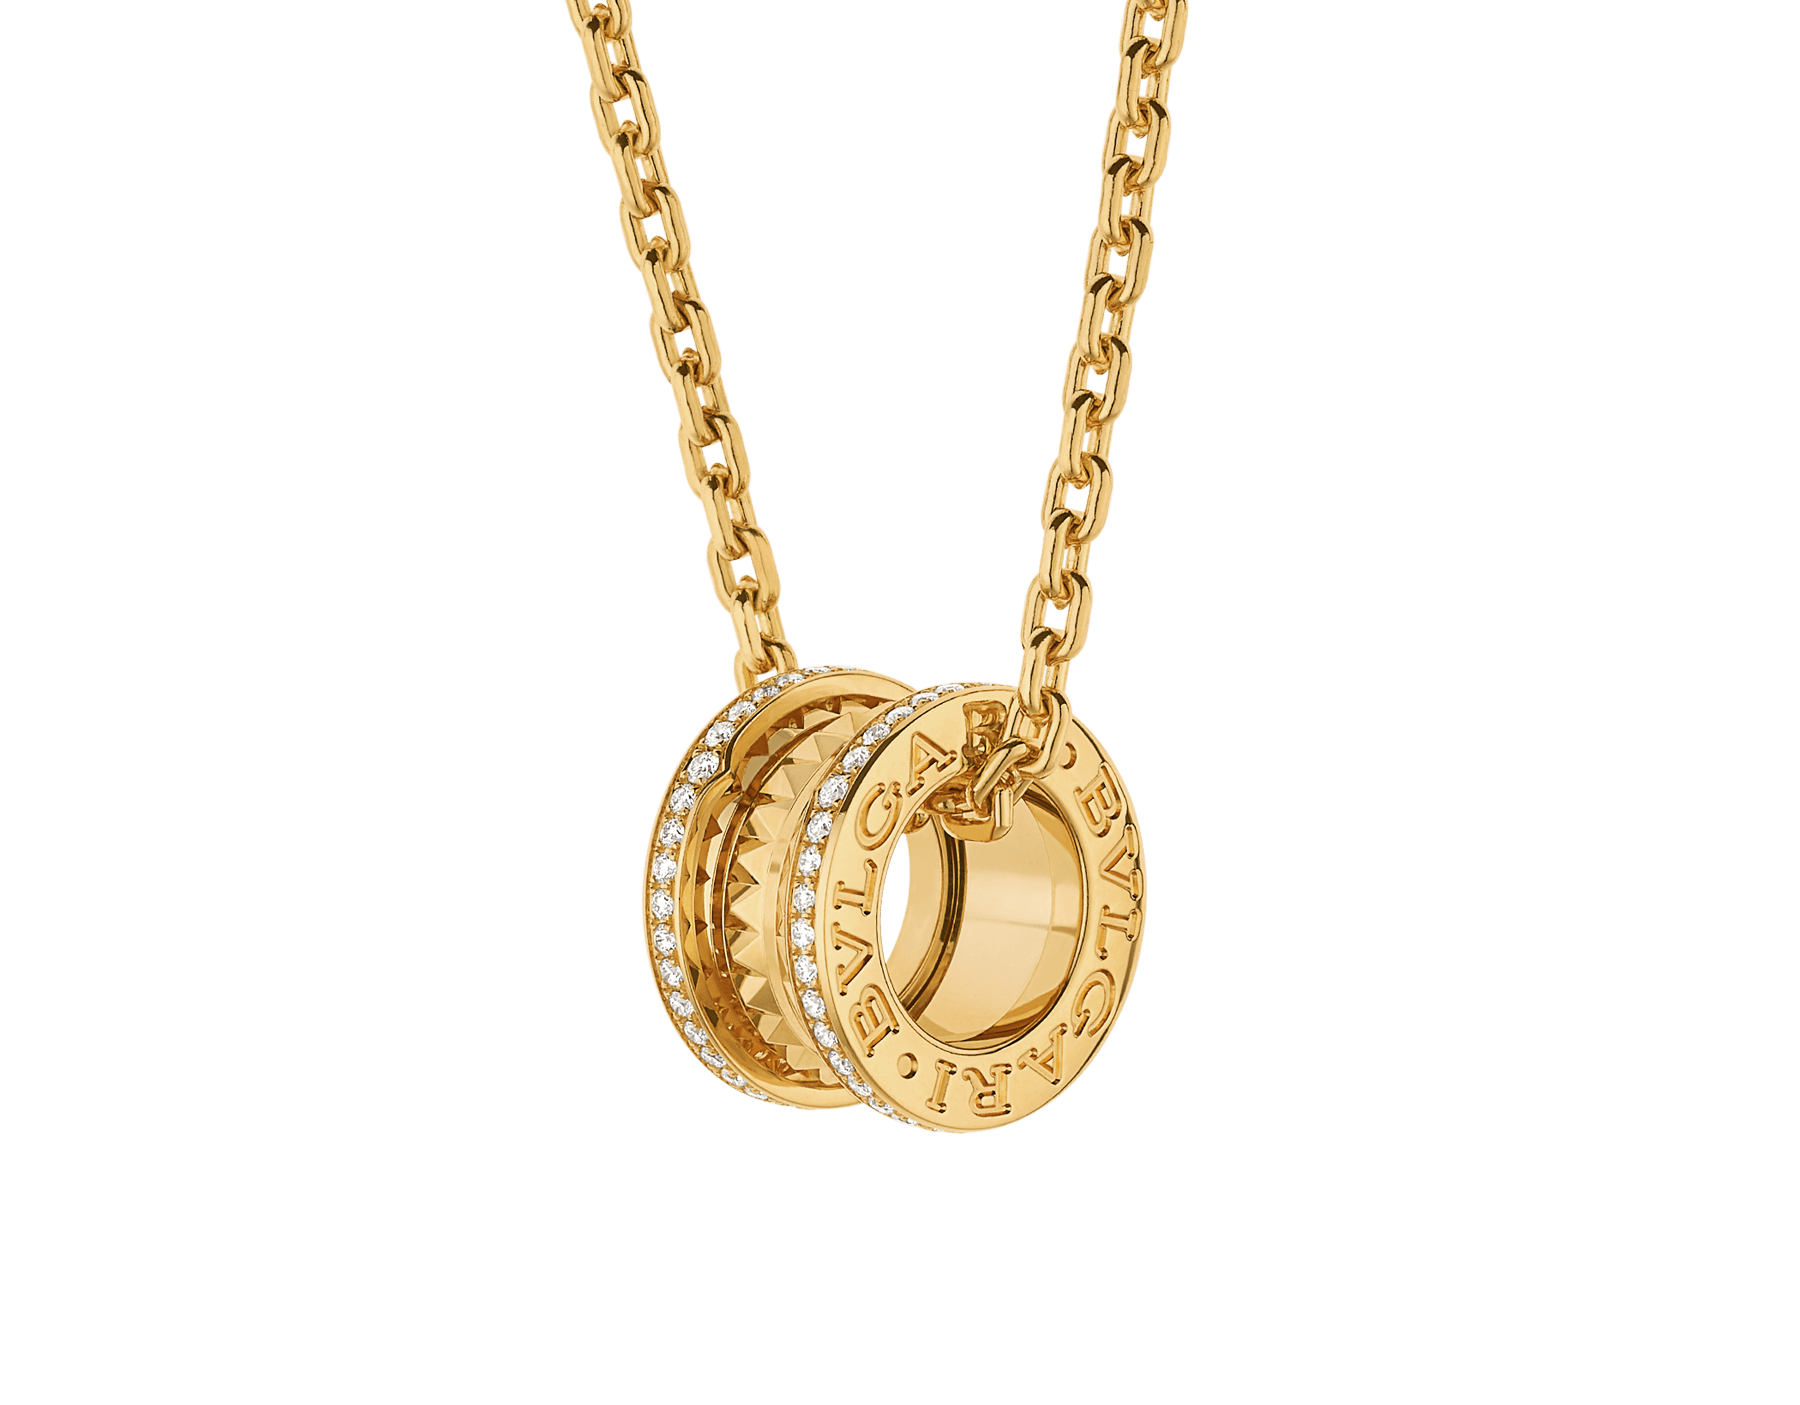 B.zero1 Rock pendant necklace in 18 kt yellow gold with studs set with pavé diamonds 358349 image 1